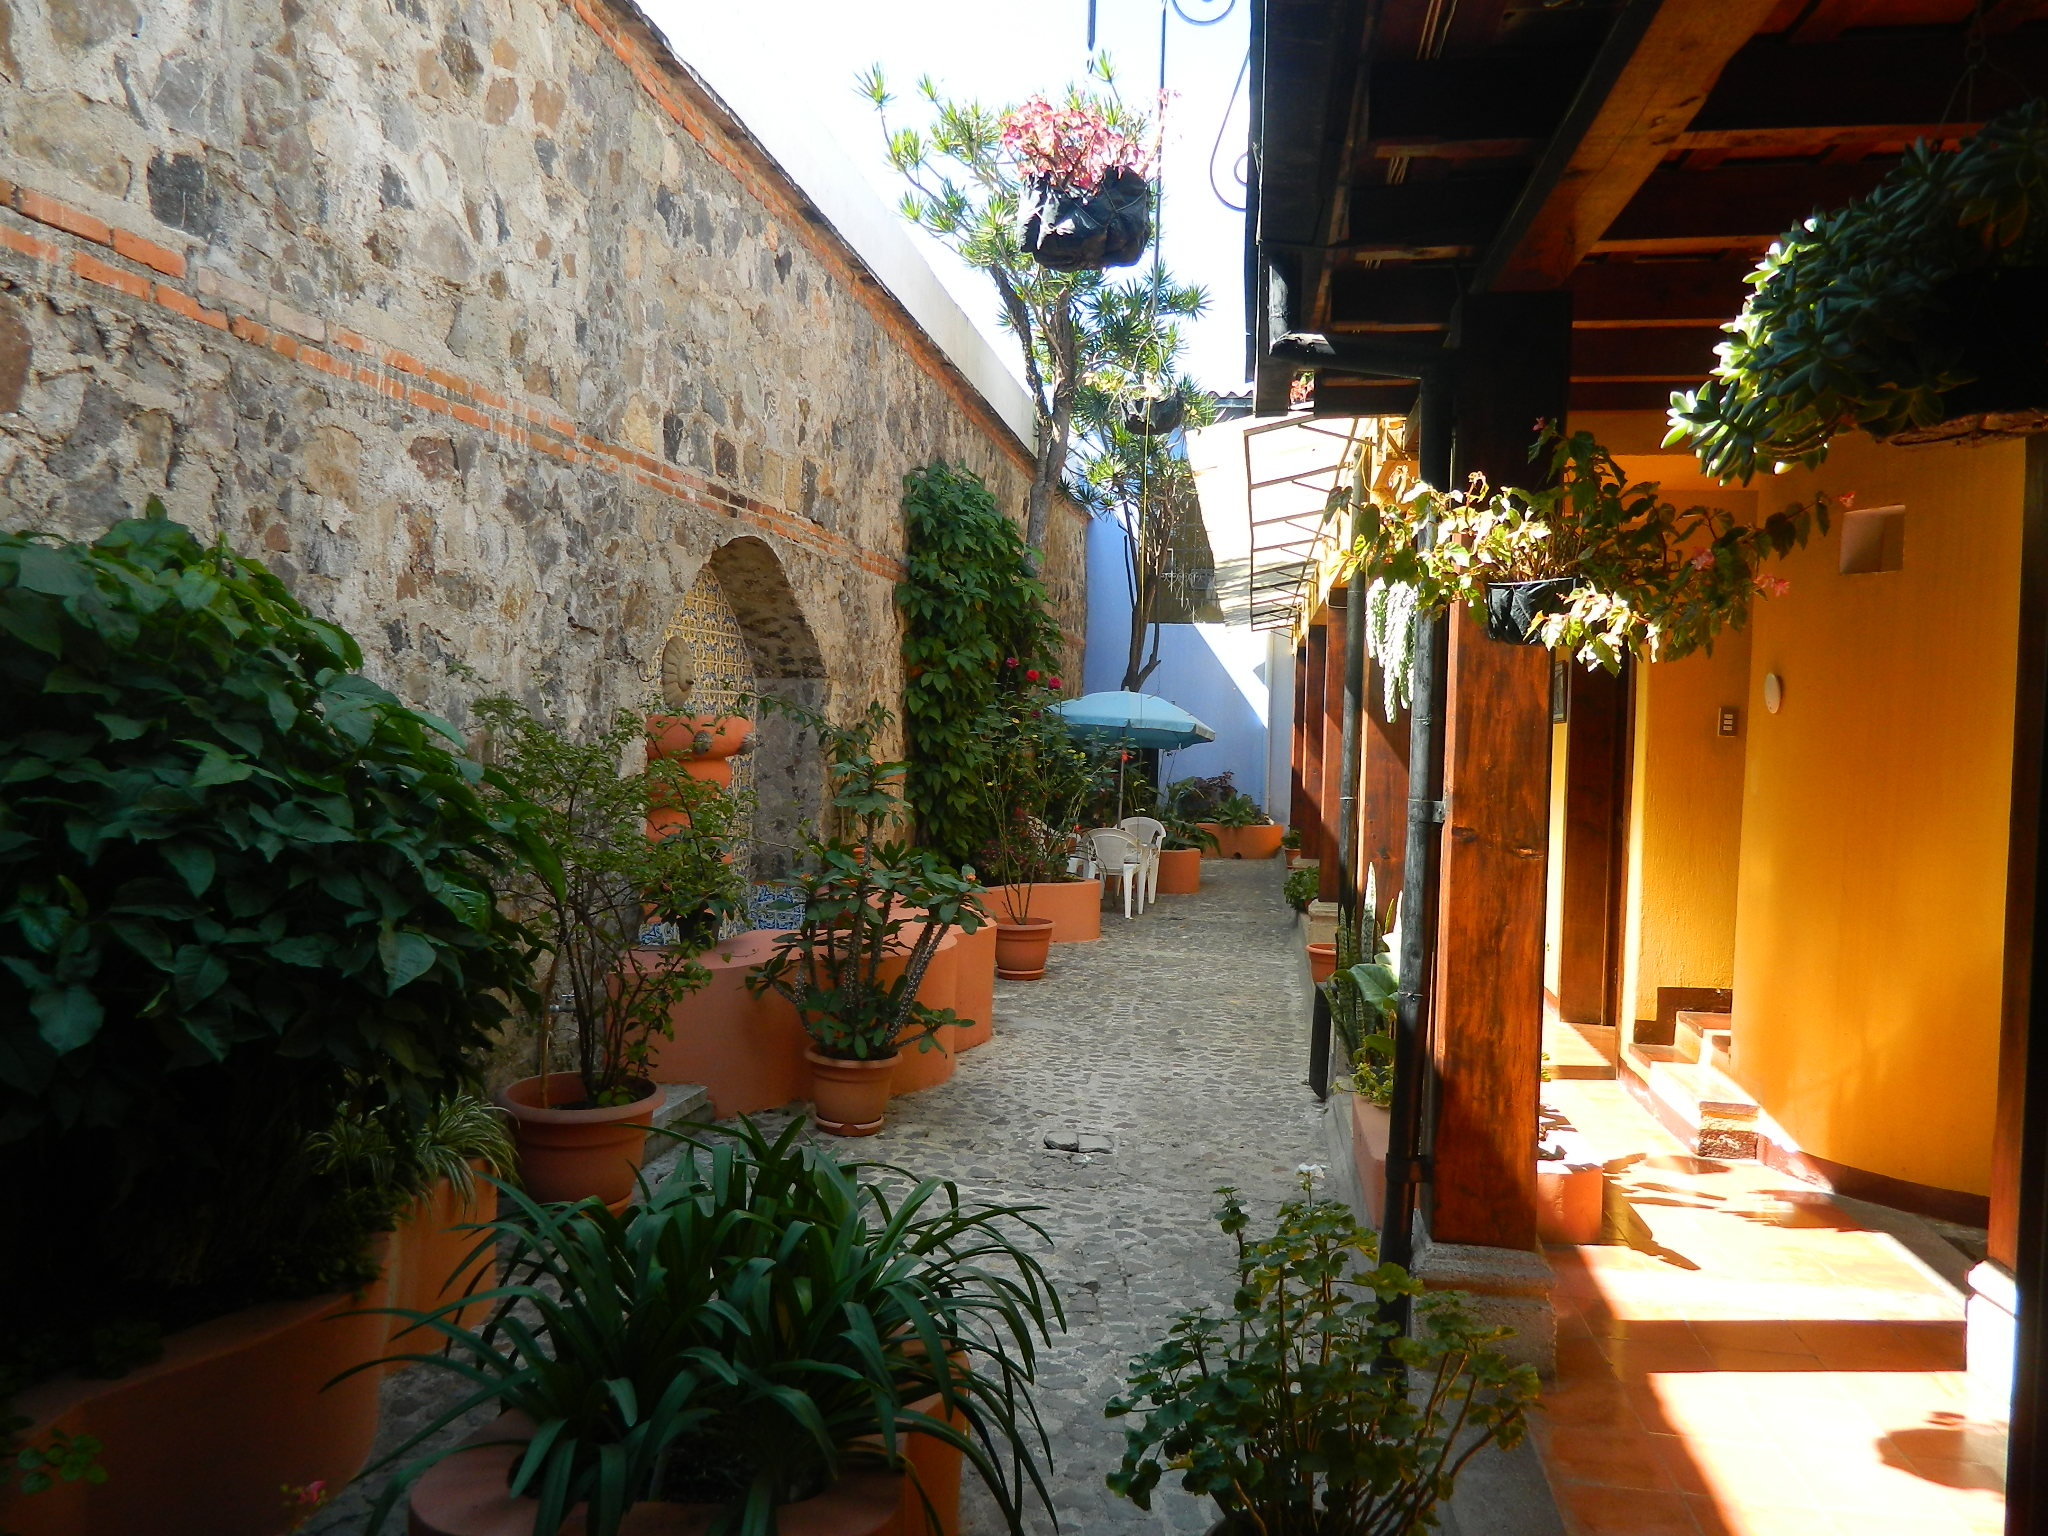 5016 UNIC COLONIAL HOUSE, FOR BUSINESS OR LIVING, IN THE CENTER OF ANTIGUA. GUATMALA (As)